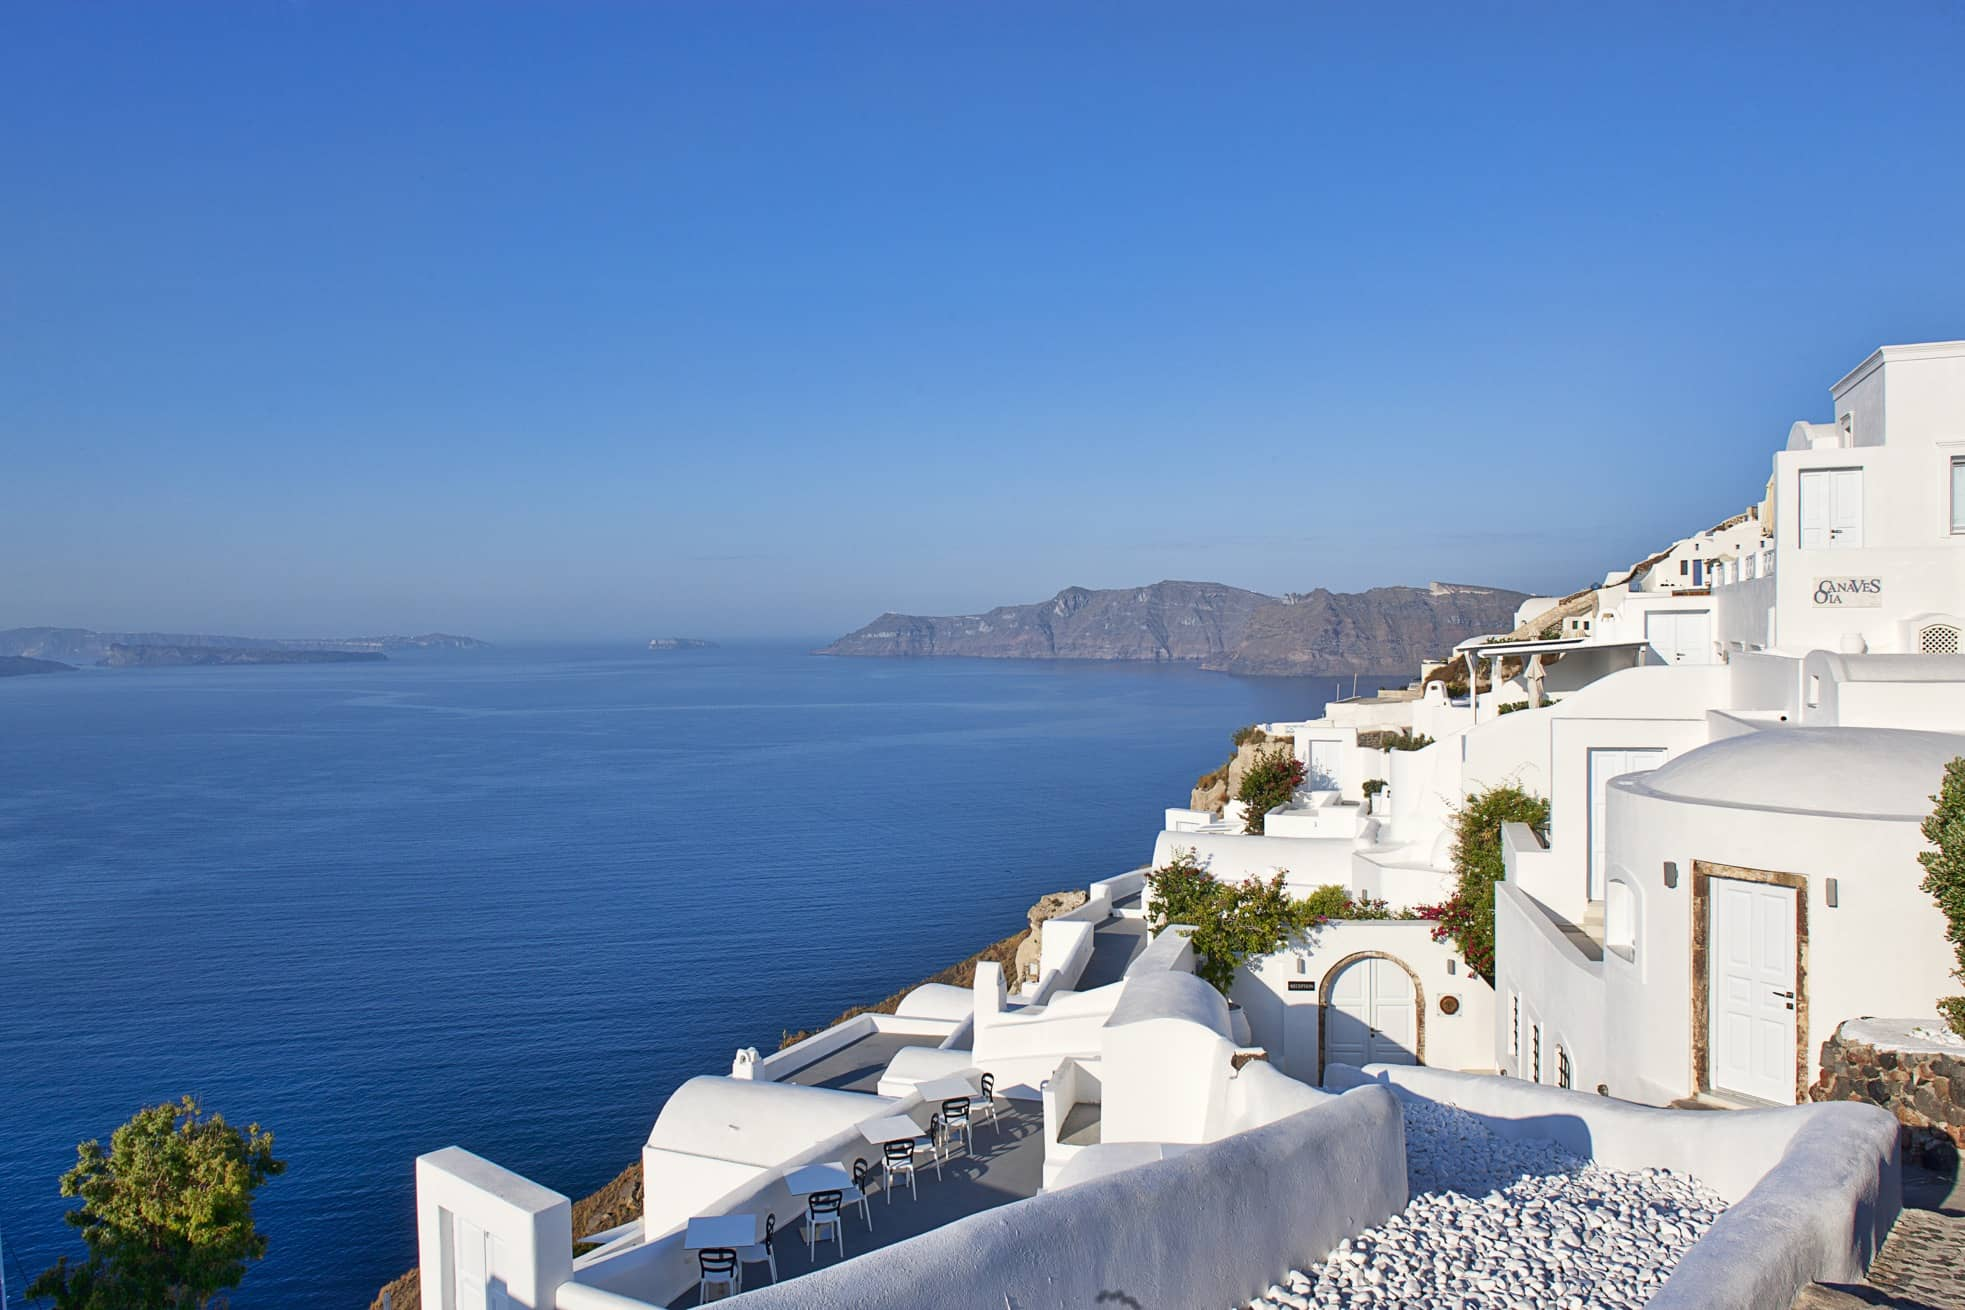 Luxury boutique hotel photos canaves oia hotel for Boutique hotel oia